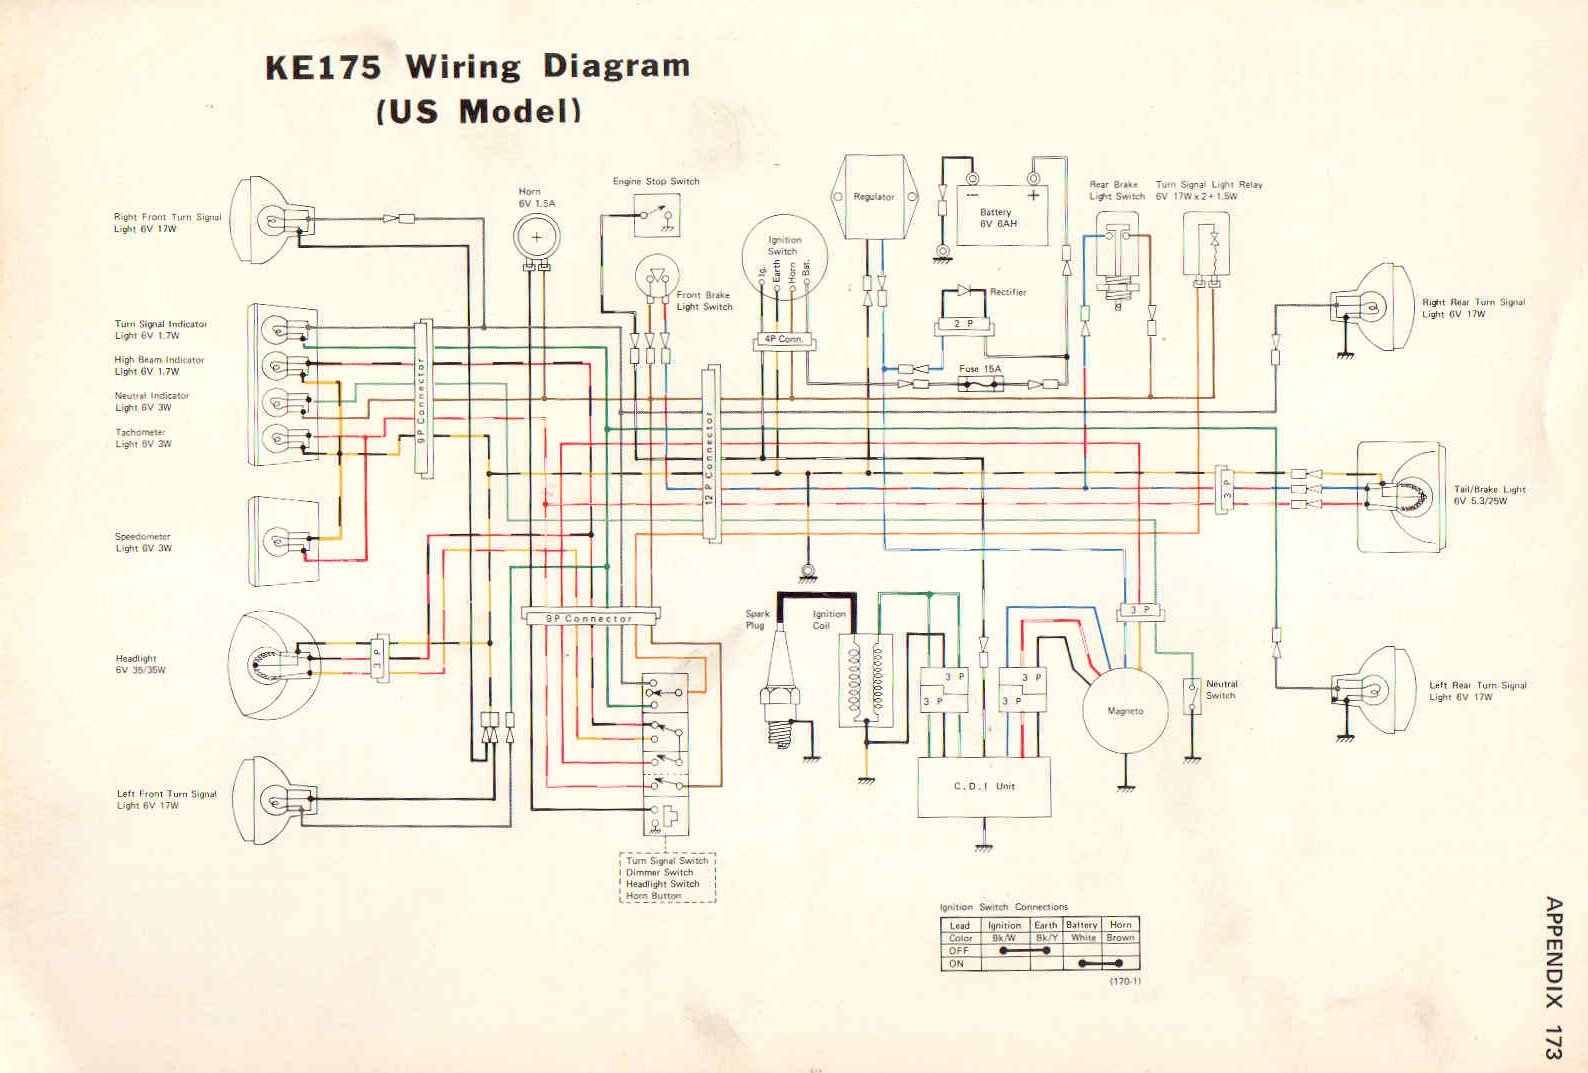 76 77 78 KE175 Wiring Diagram 76 77 78 ke175 wiring diagram 2005 crf250r wiring diagram at alyssarenee.co